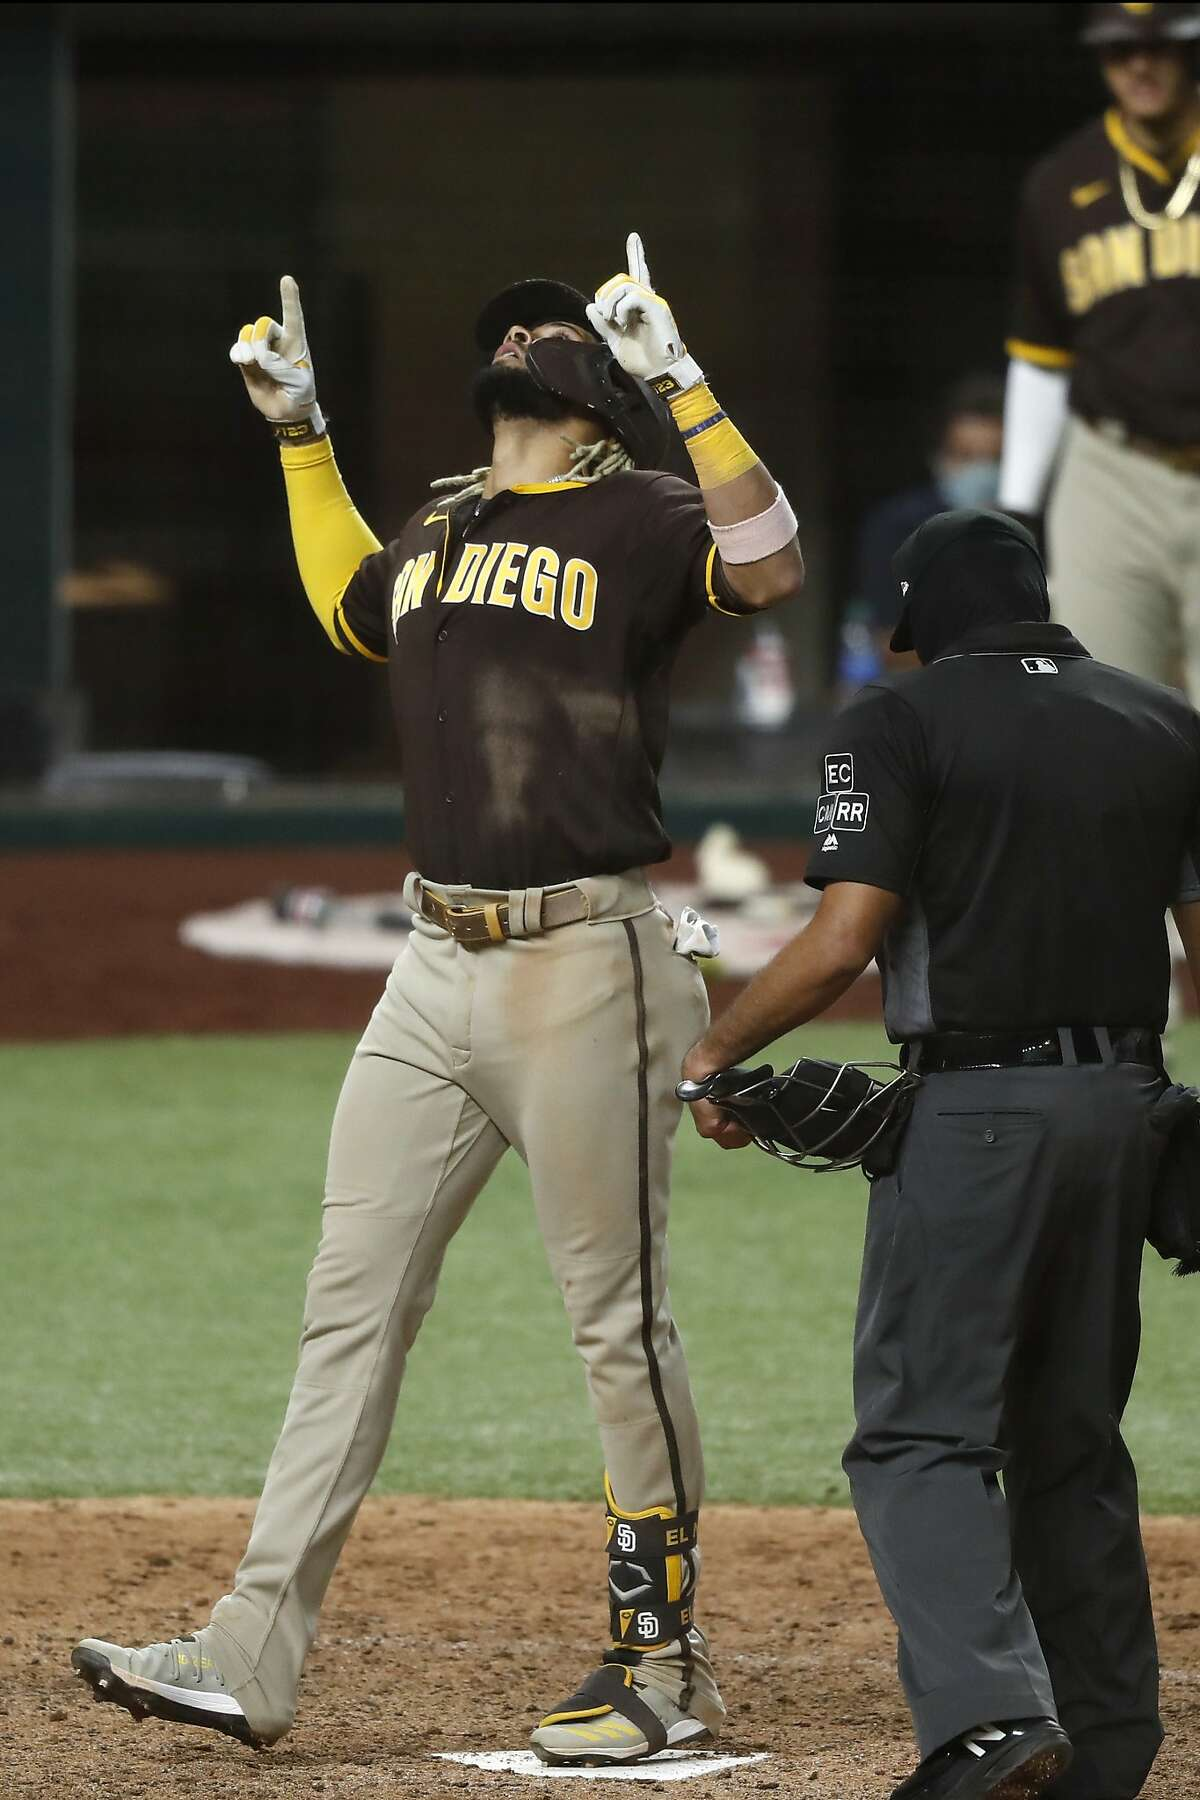 San Diego Padres' Fernando Tatis Jr. celebrates his three-run home run as umpire Nestor Ceja, front, watches him cross the plate in the seventh inning of a baseball game against the Texas Rangers in Arlington, Texas, Monday Aug. 17, 2020. (AP Photo/Tony Gutierrez)